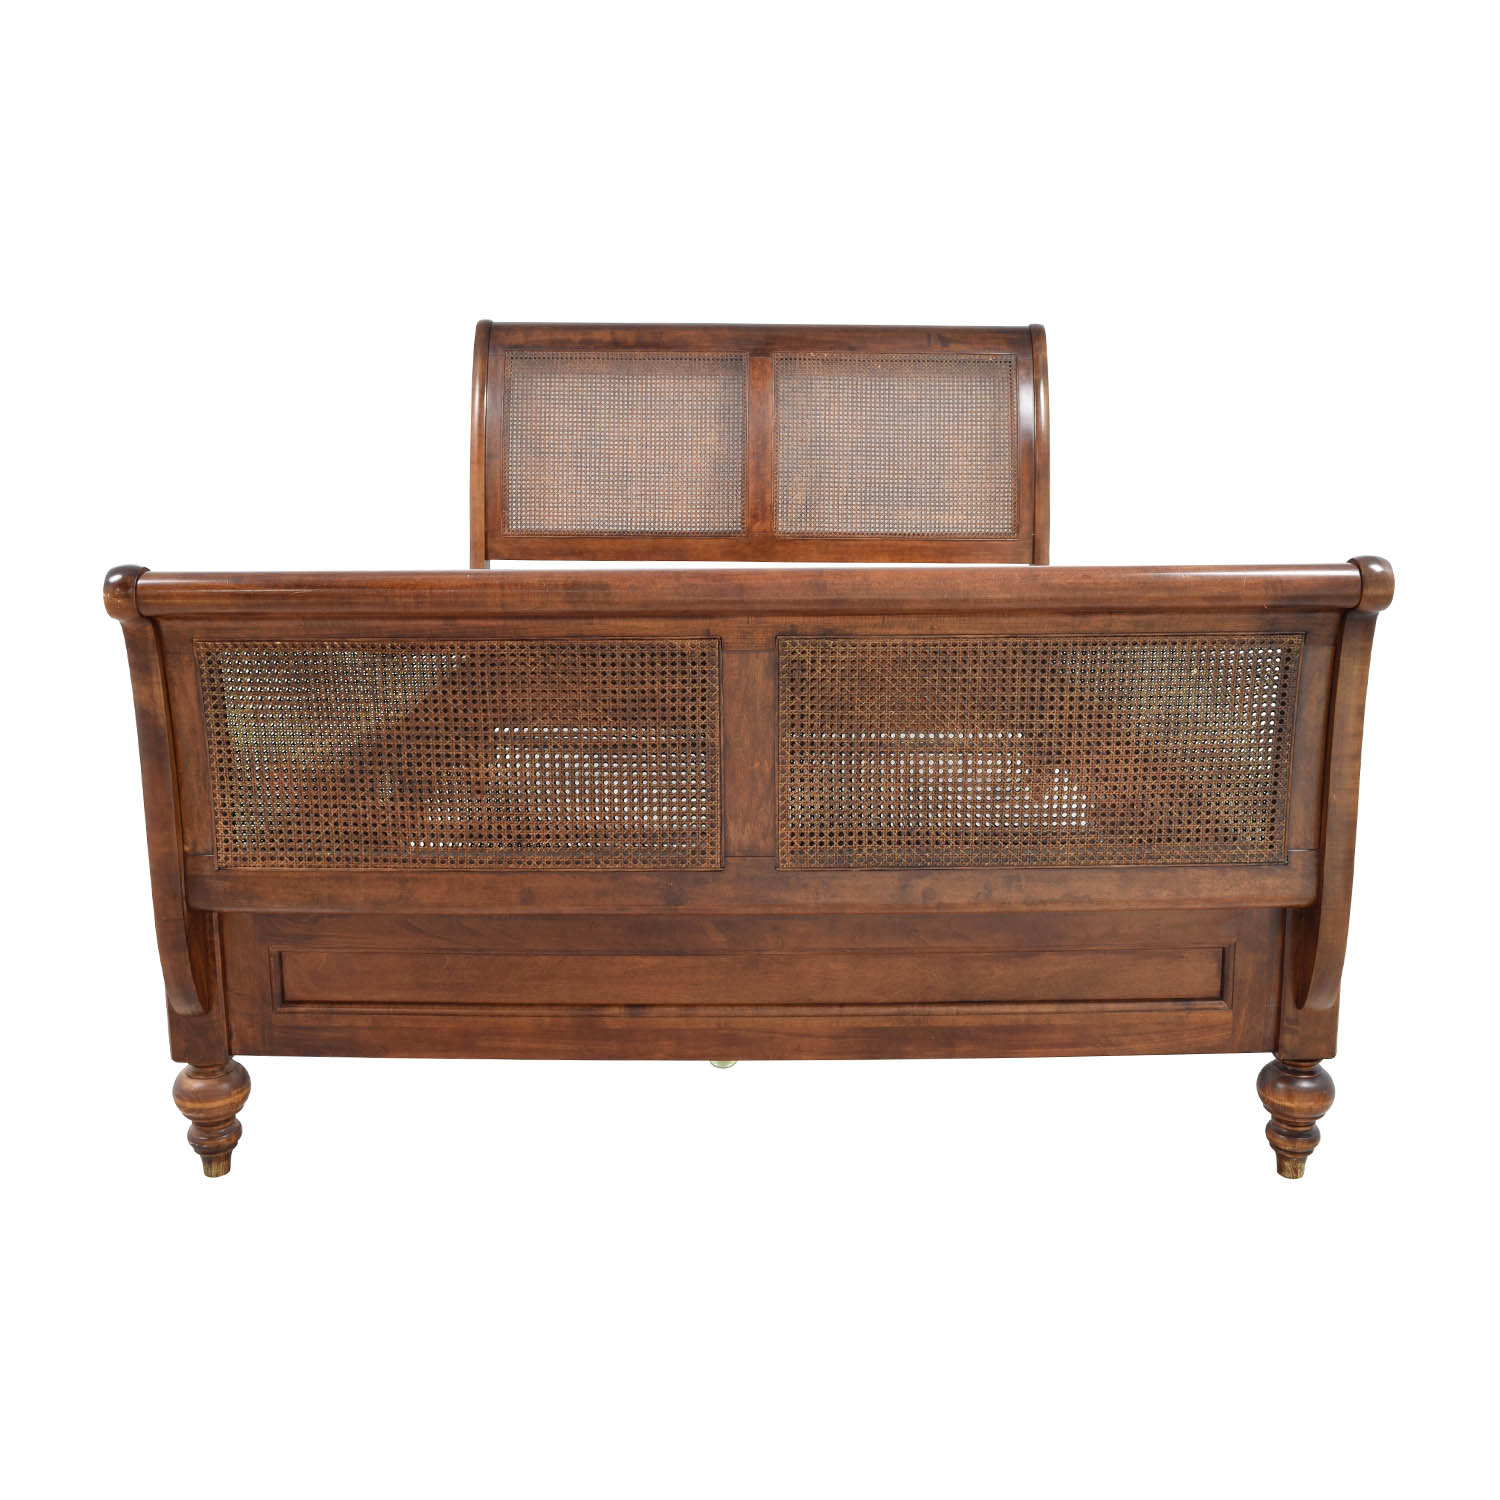 Restoration Hardware Restoration Hardware Queen Bed for sale